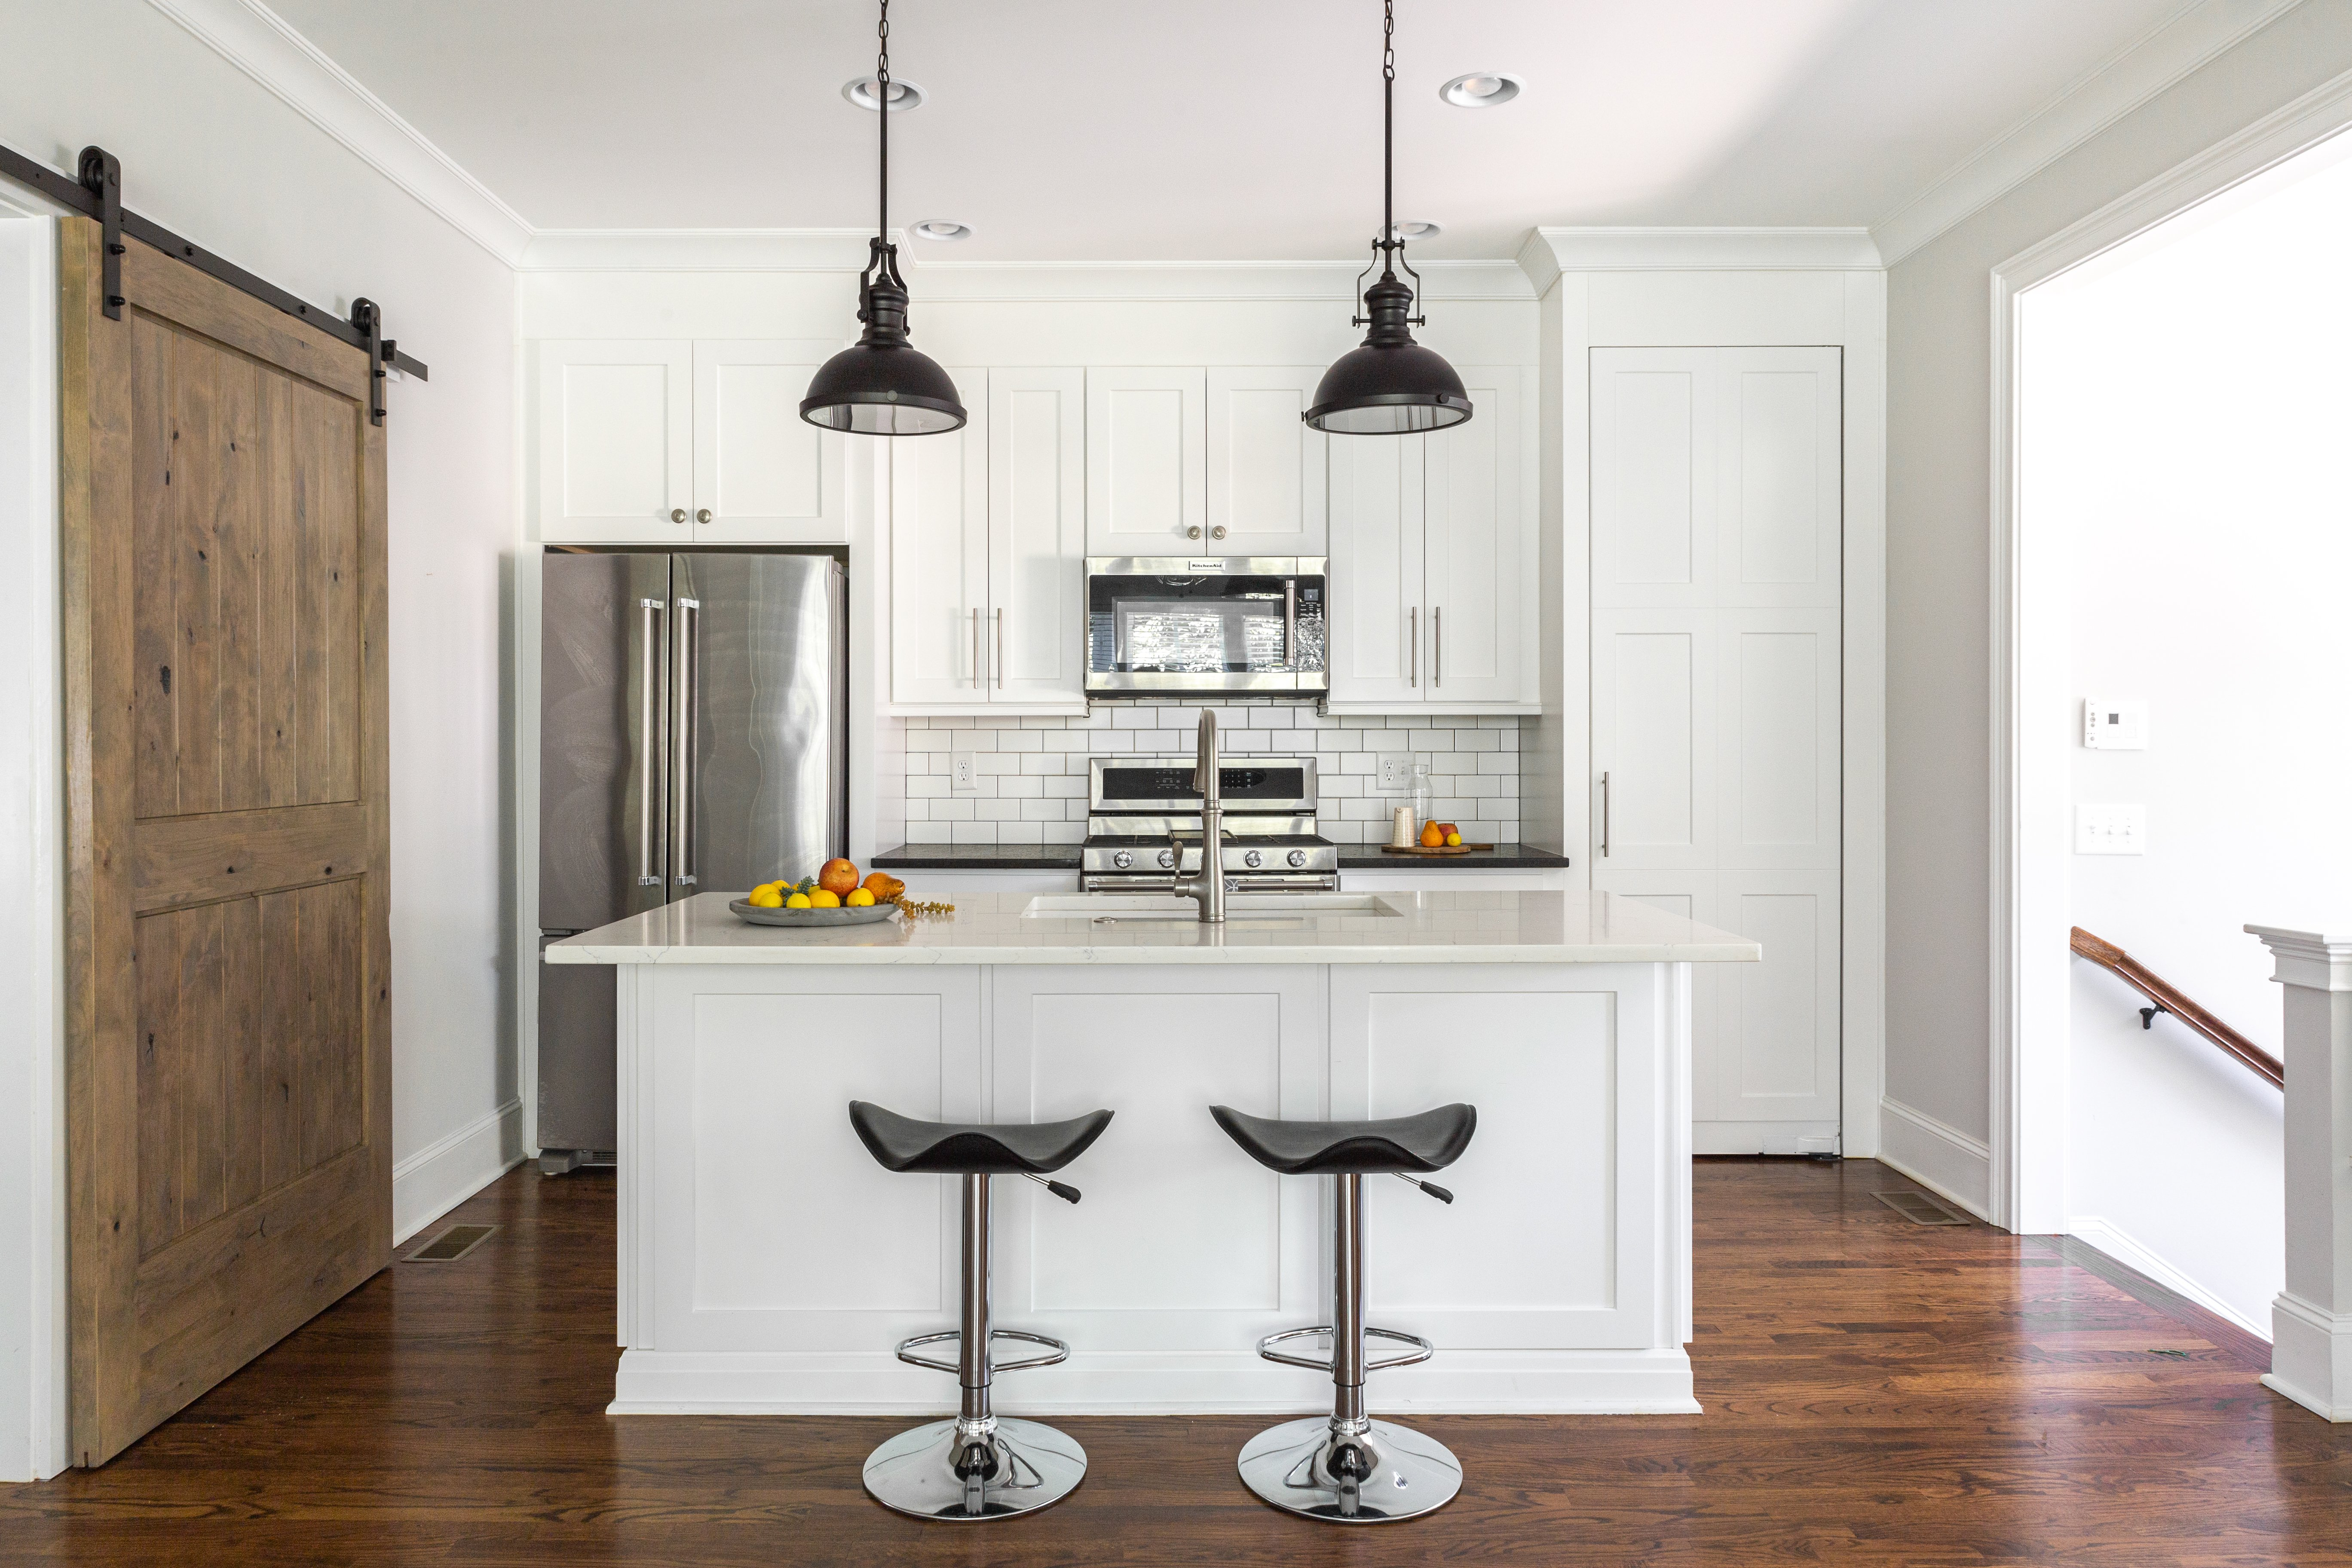 12 counter stools Sinclair Carriage House-6.jpg